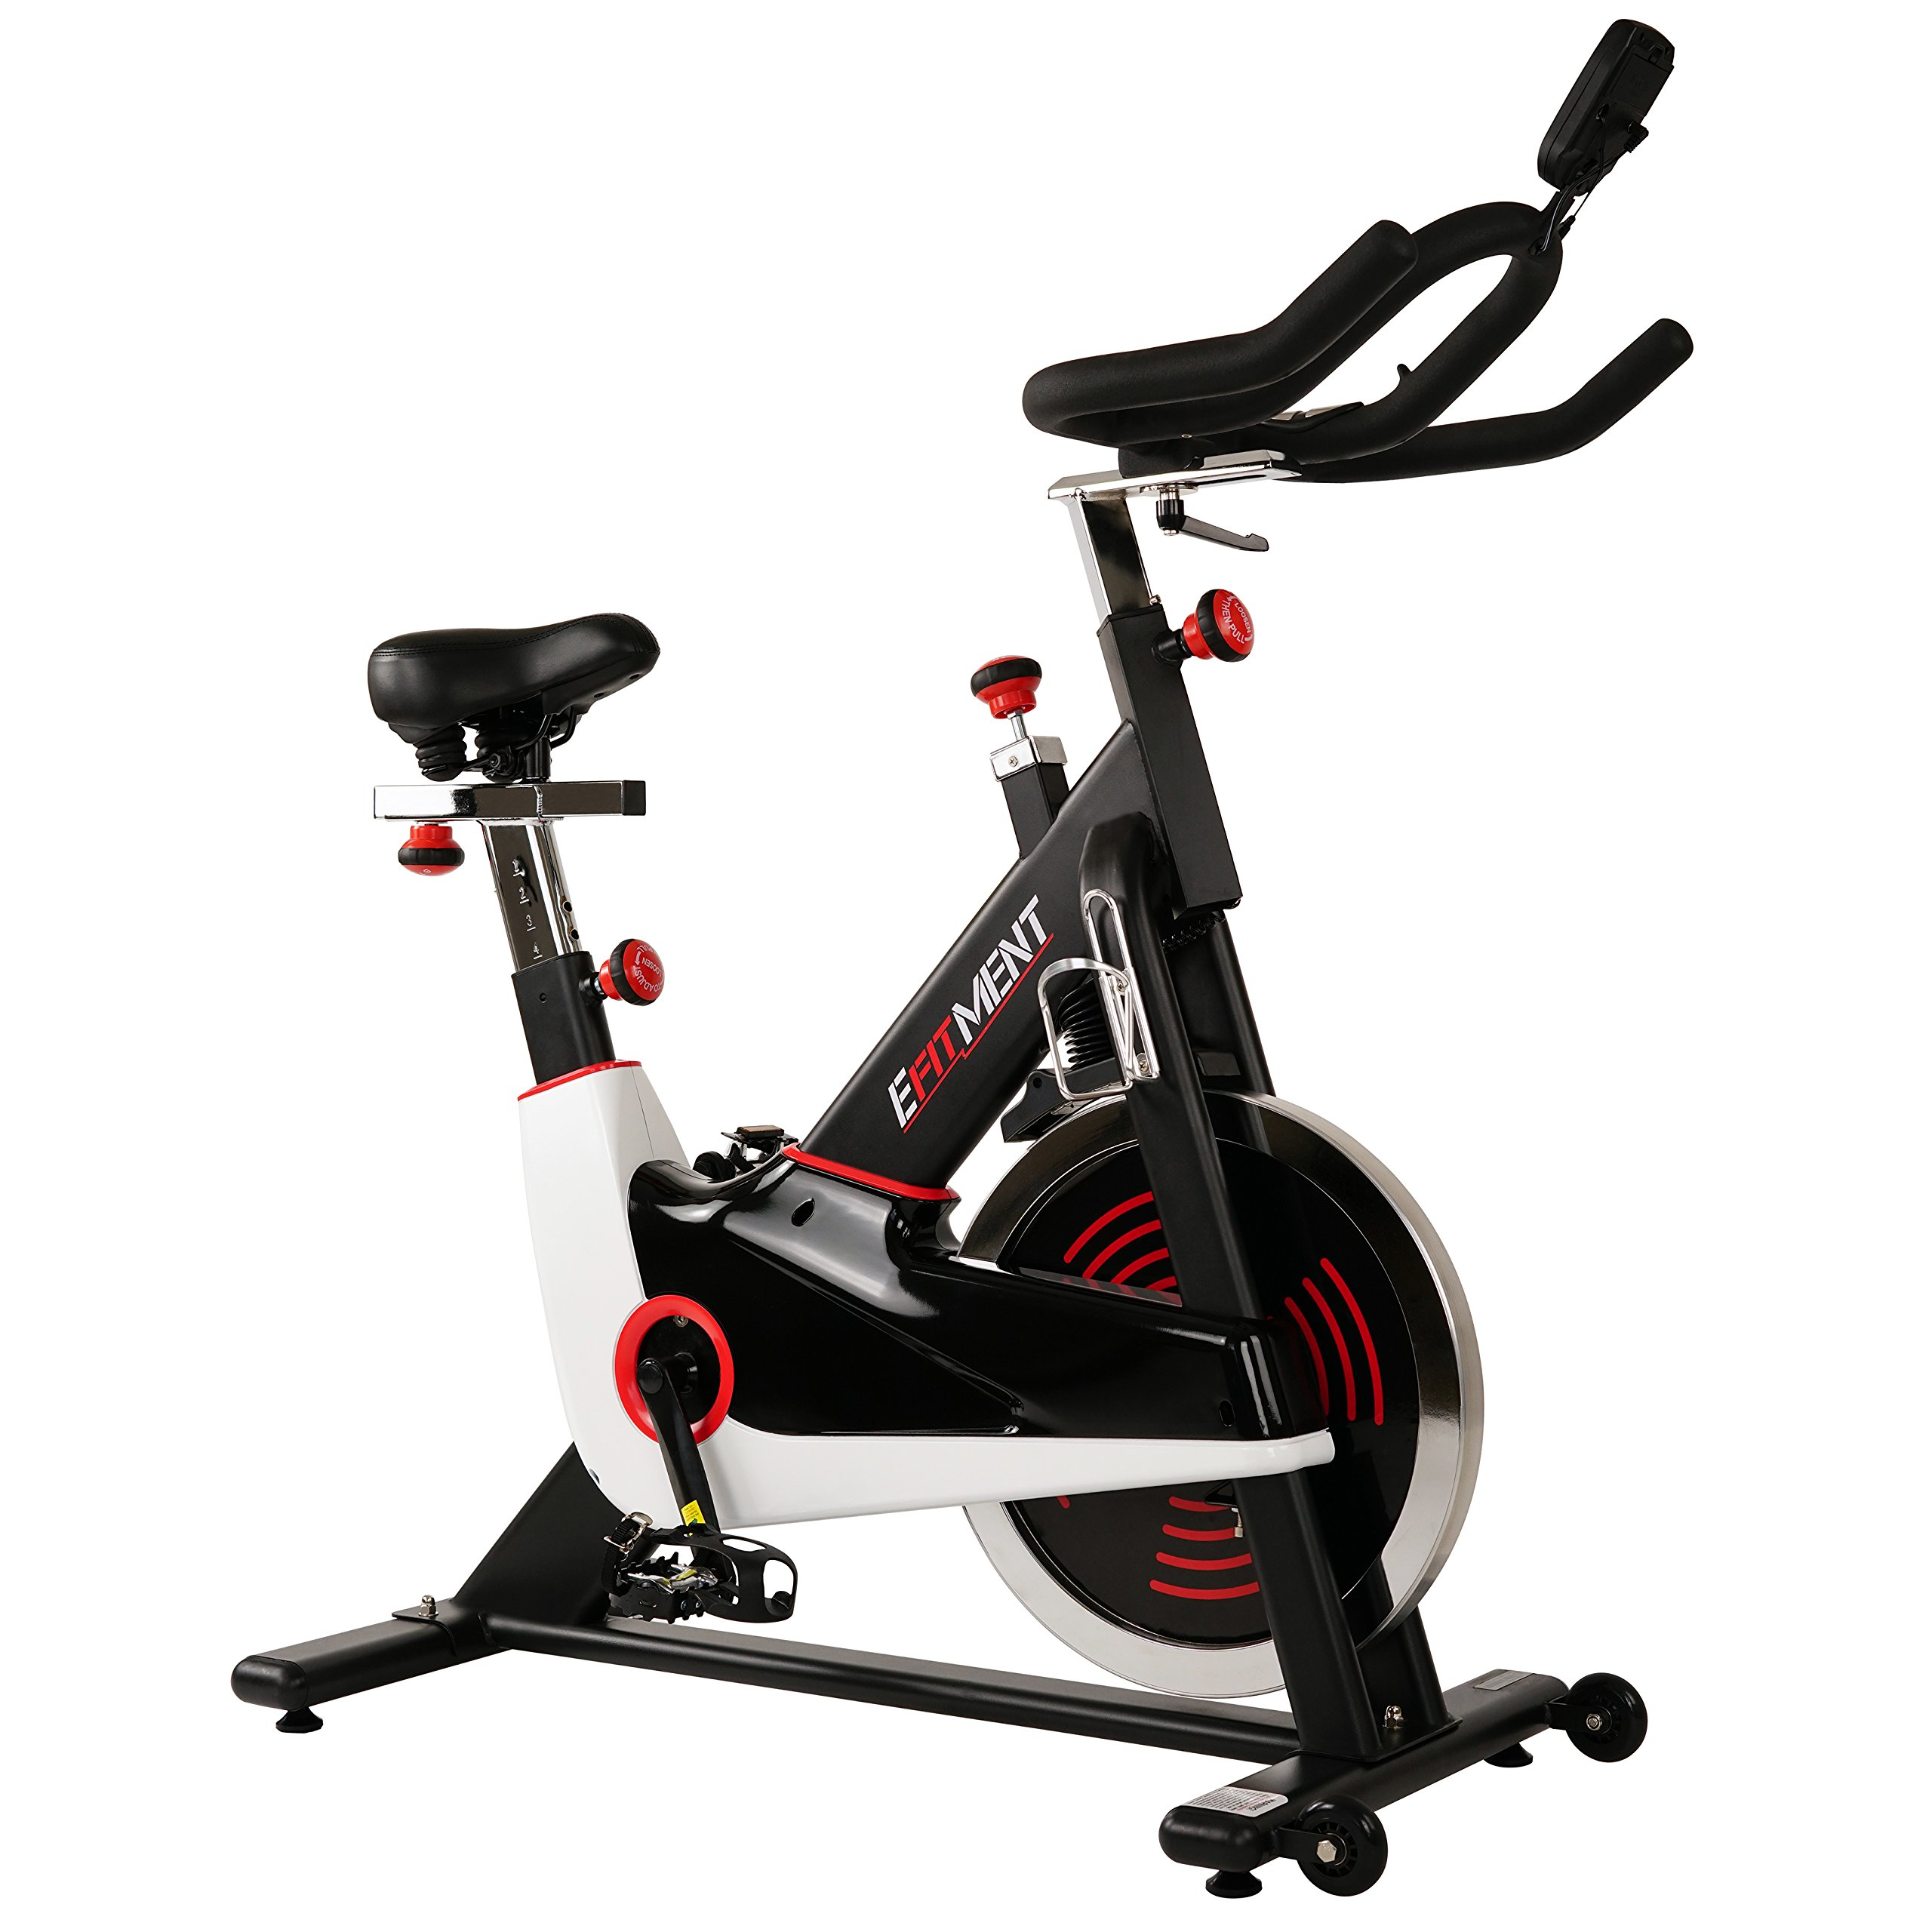 EFITMENT Indoor Cycle Bike, Magnetic Cycling Trainer Exercise Bike IC033